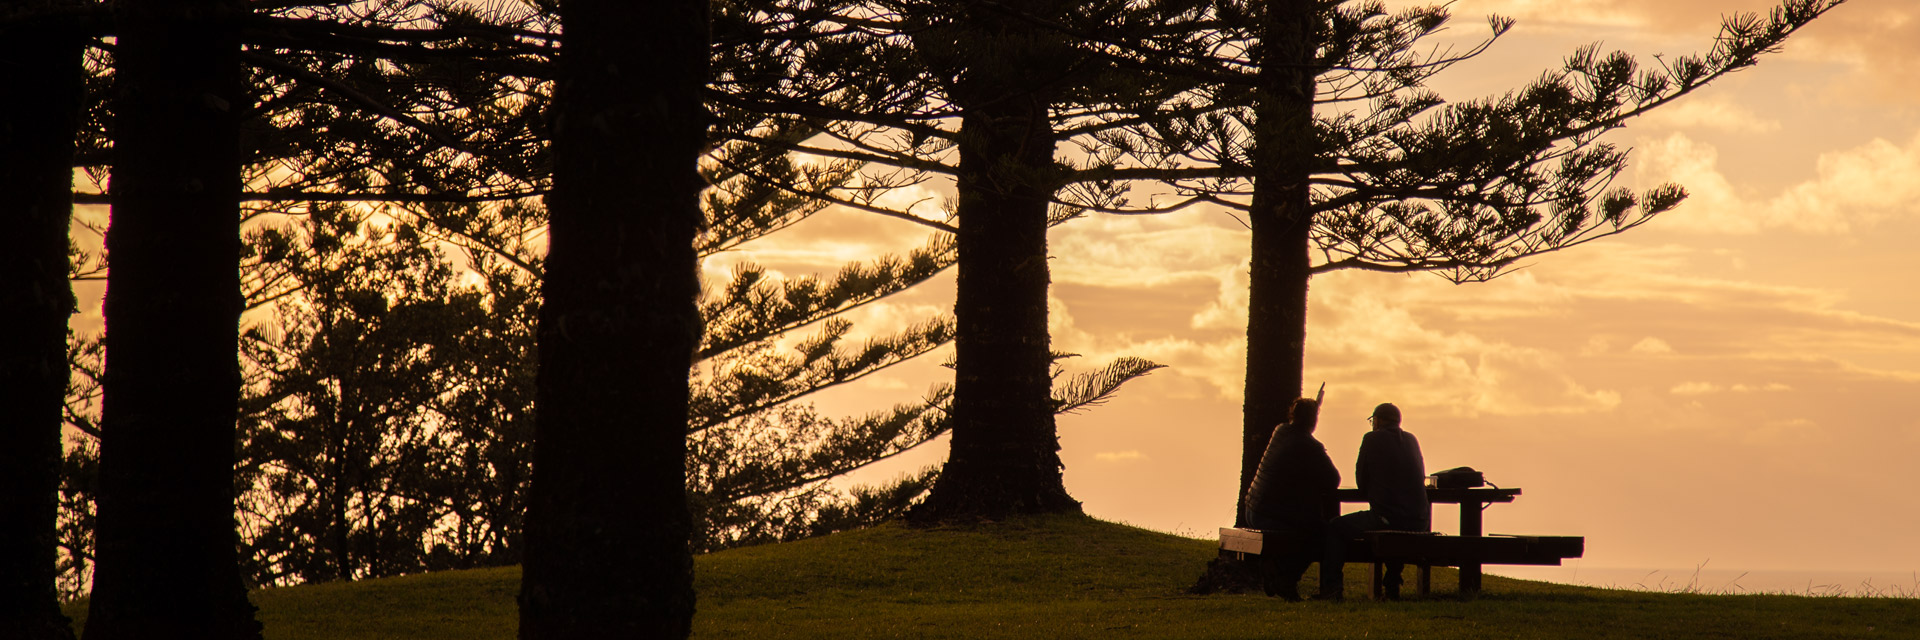 Sun setting through Norfolk pines with silhouette of couple picnicking